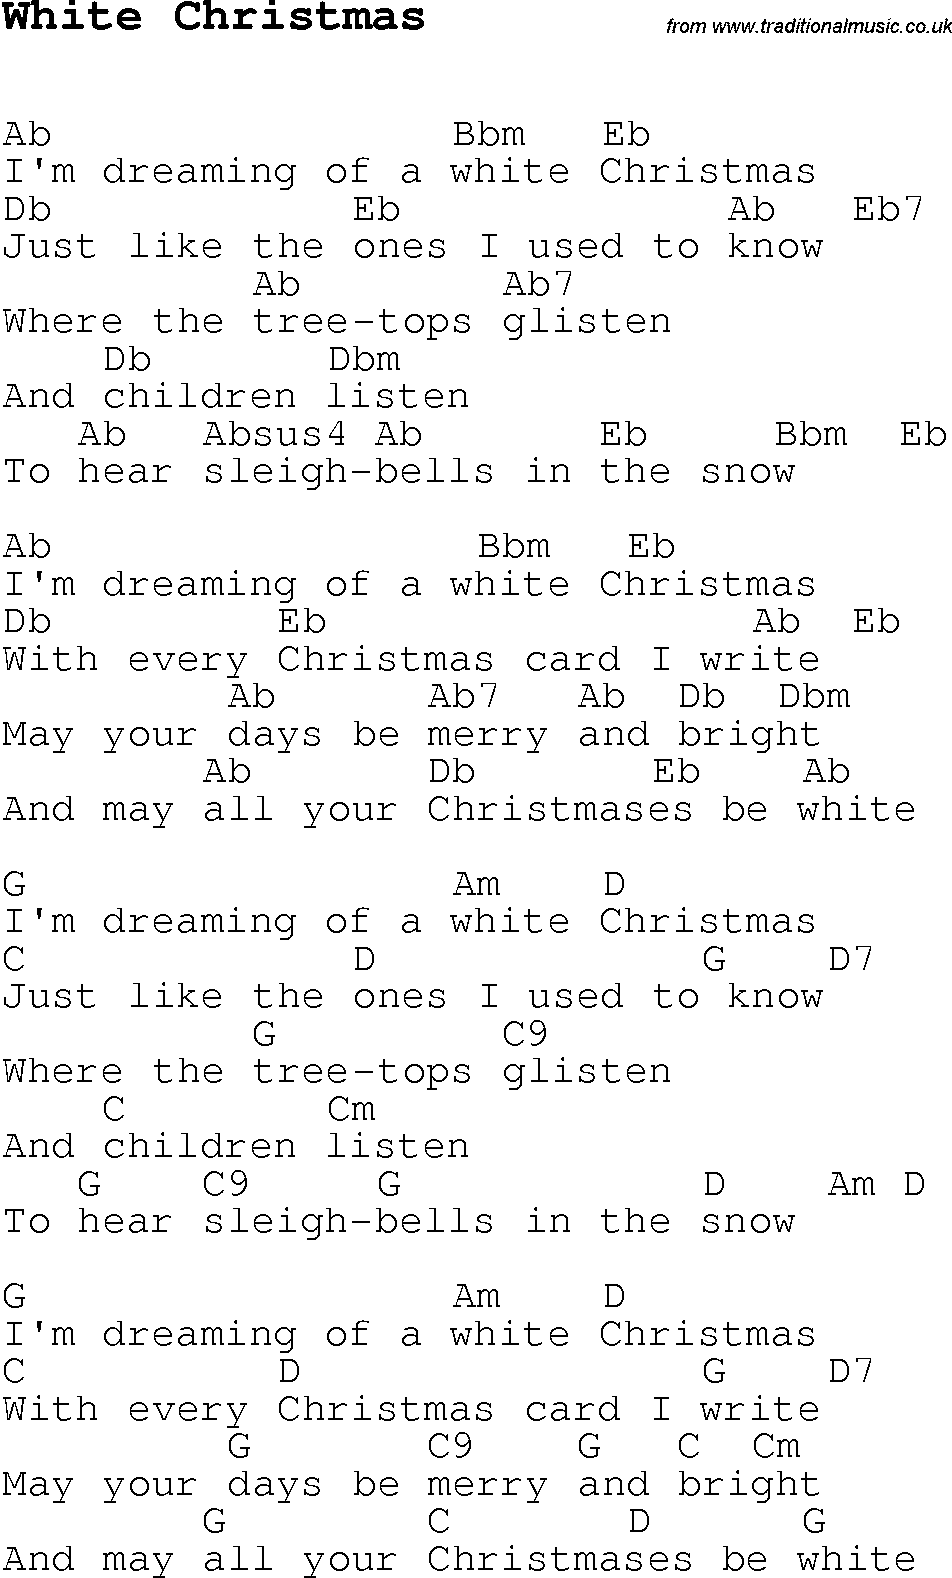 christmas songs and carols lyrics with chords for guitar banjo for white christmas - Black Christmas Songs